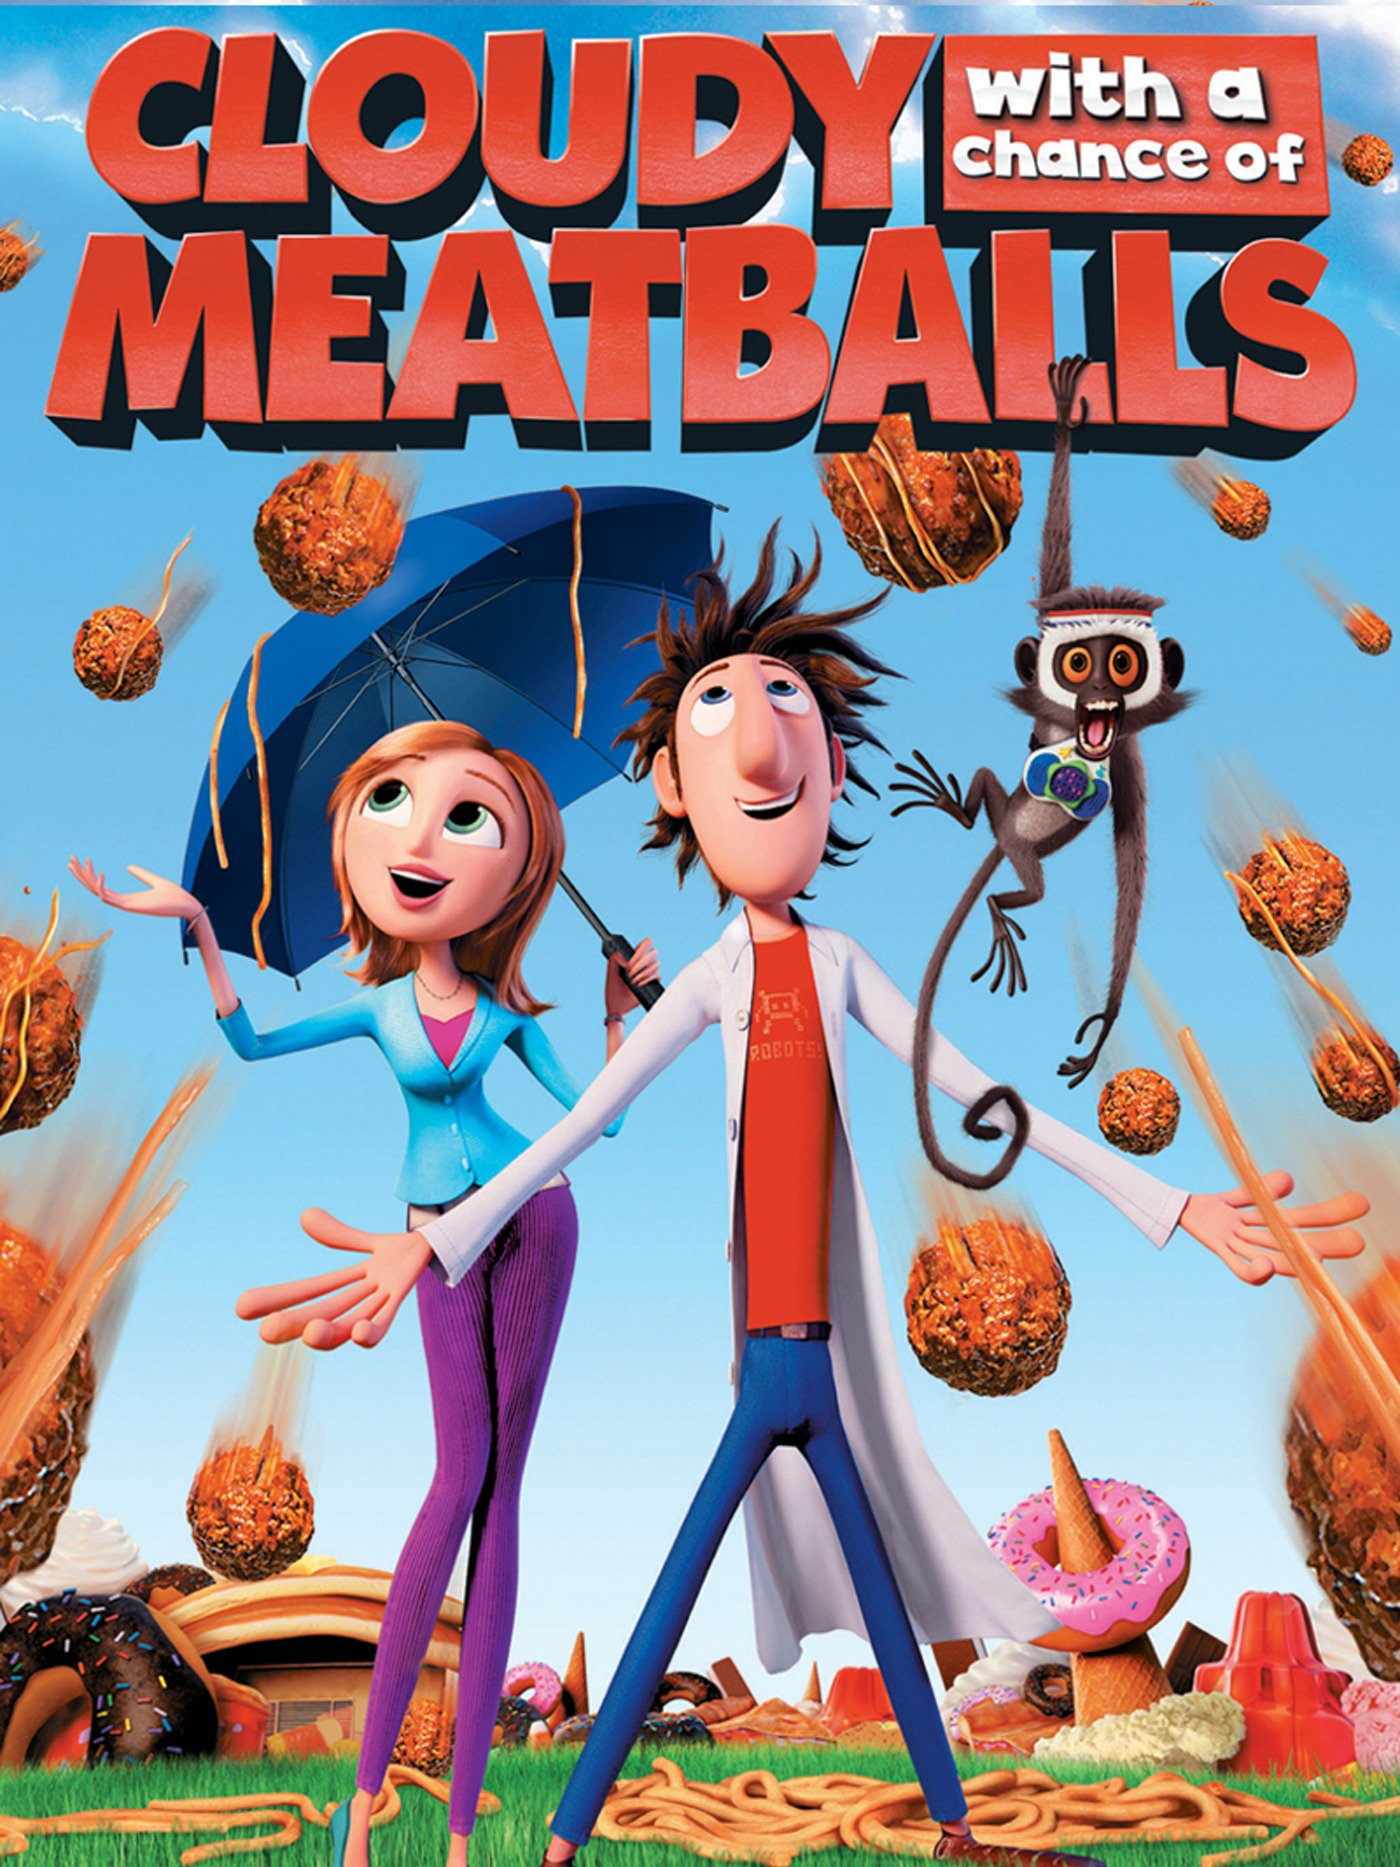 Amazon co uk: Watch Cloudy With a Chance of Meatballs